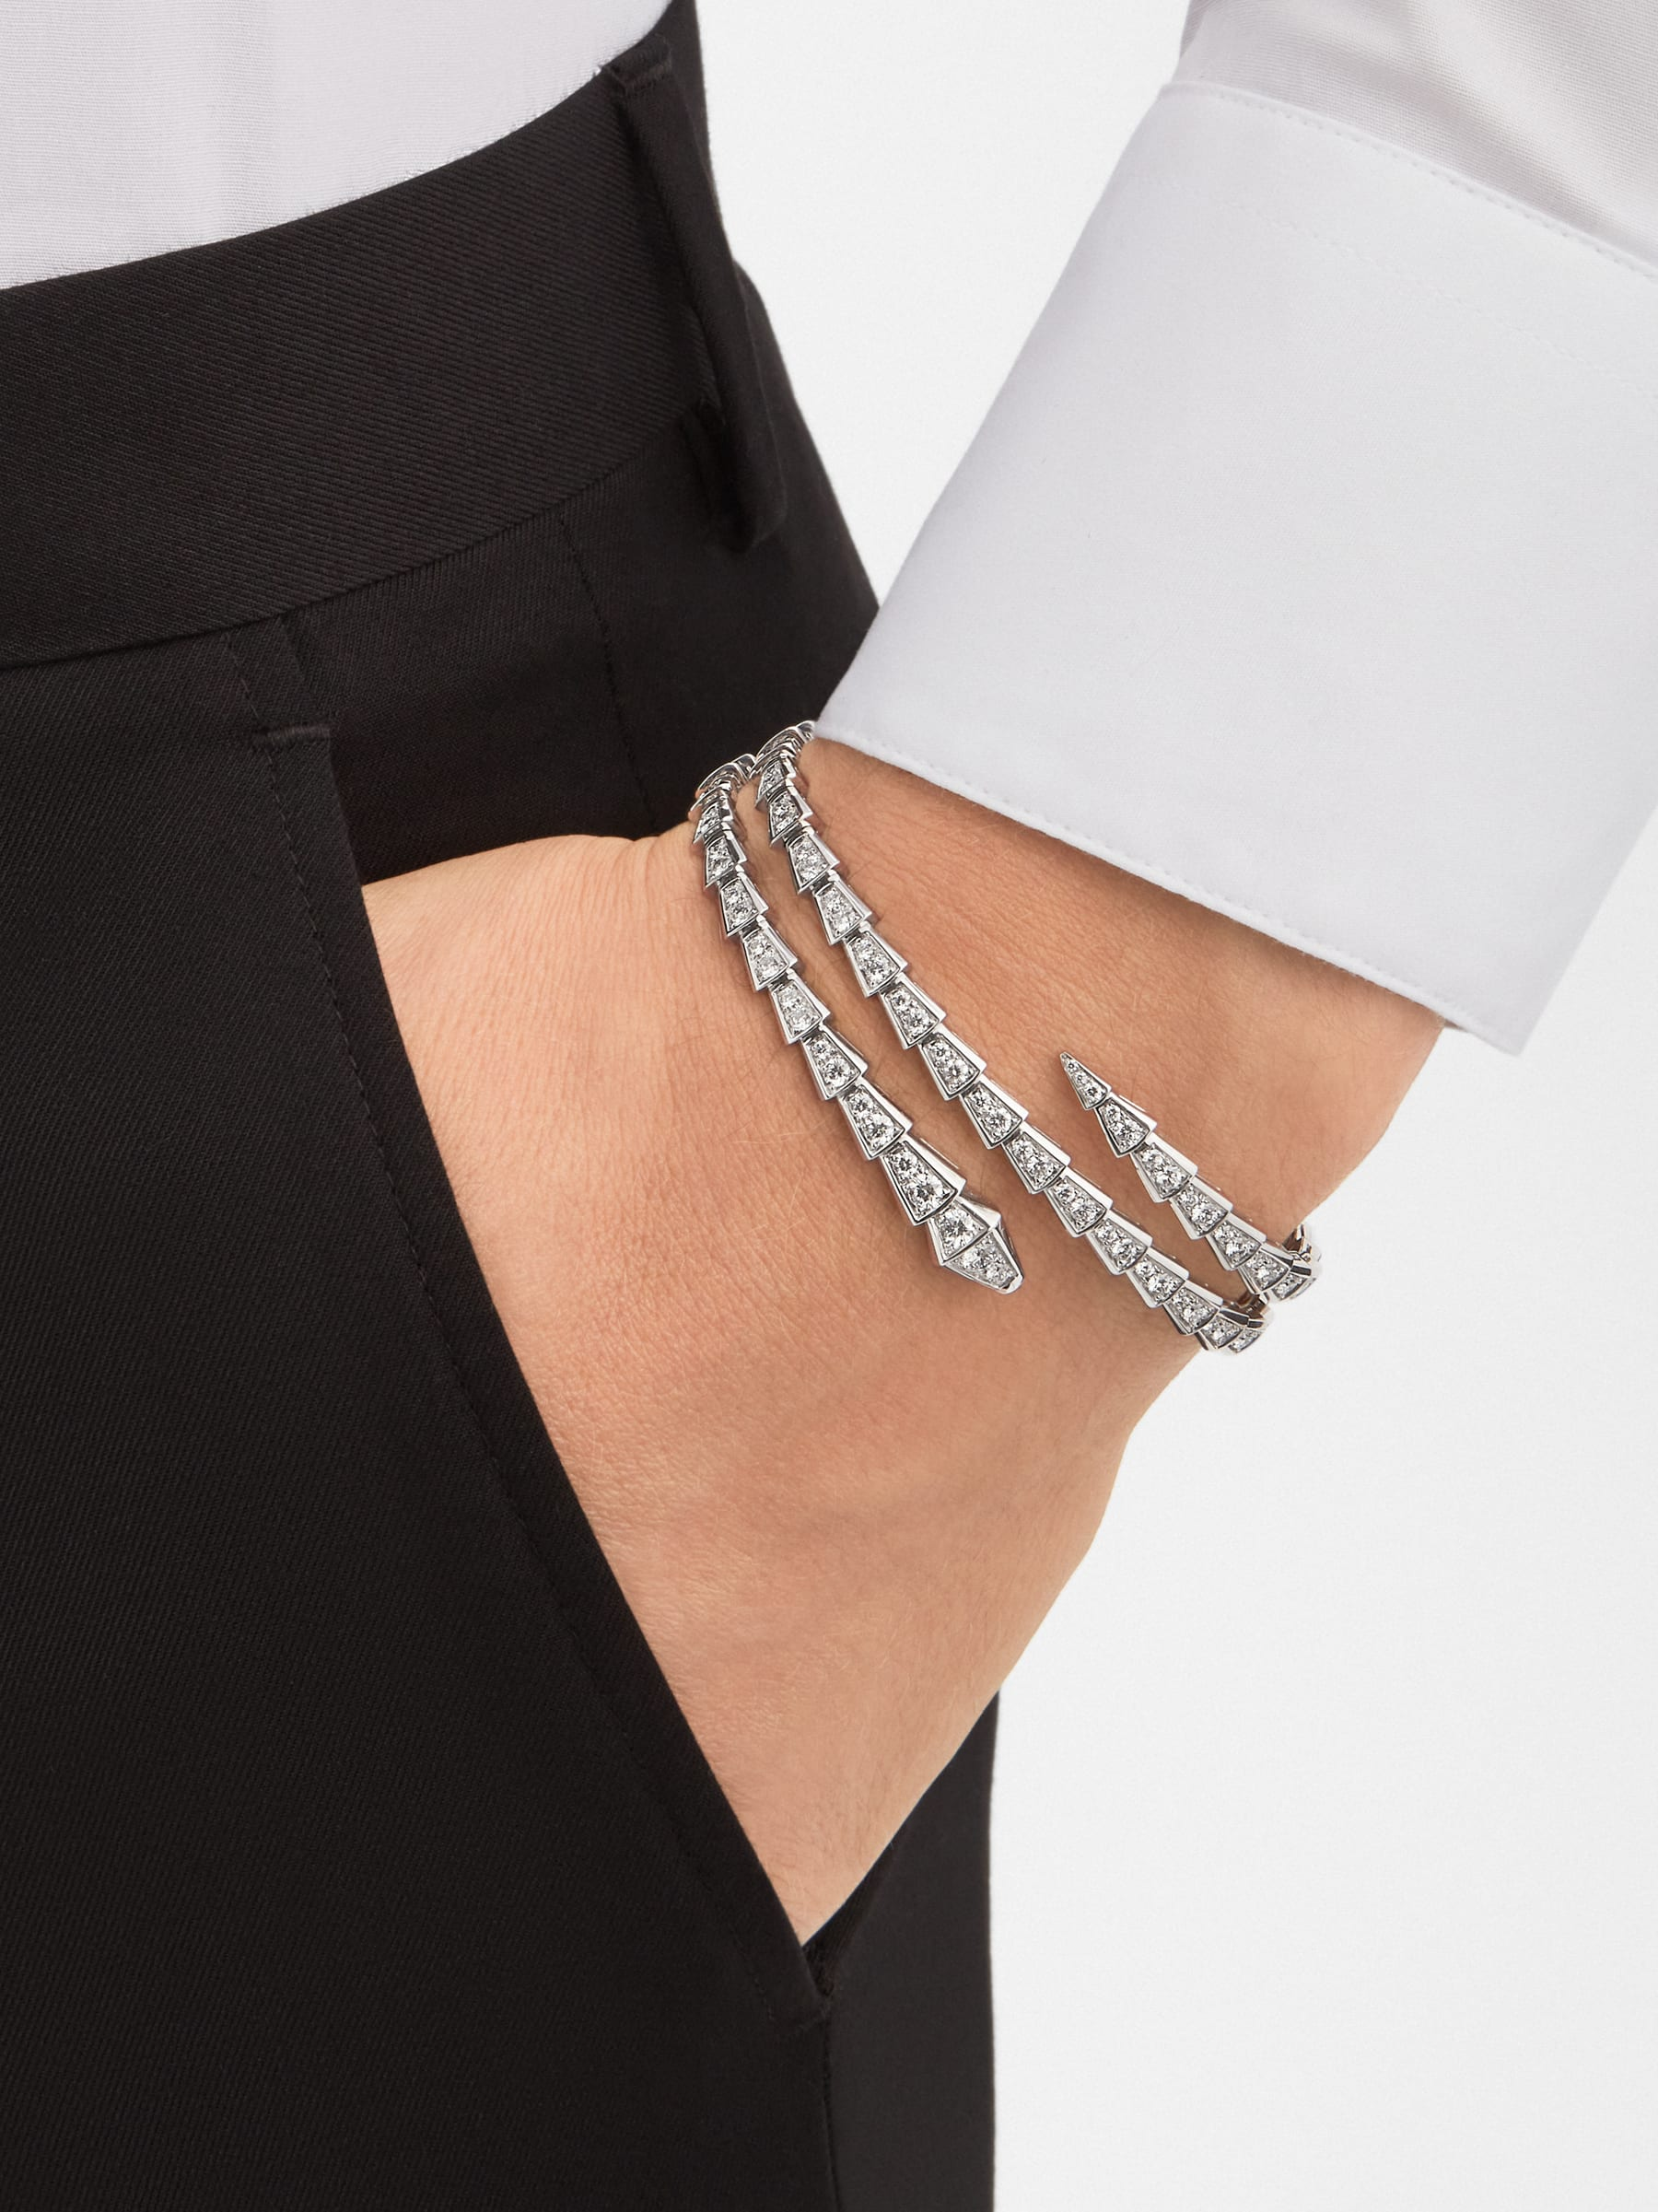 Serpenti Viper two-coil 18 kt white gold bracelet set with pavé diamonds BR858795 image 4